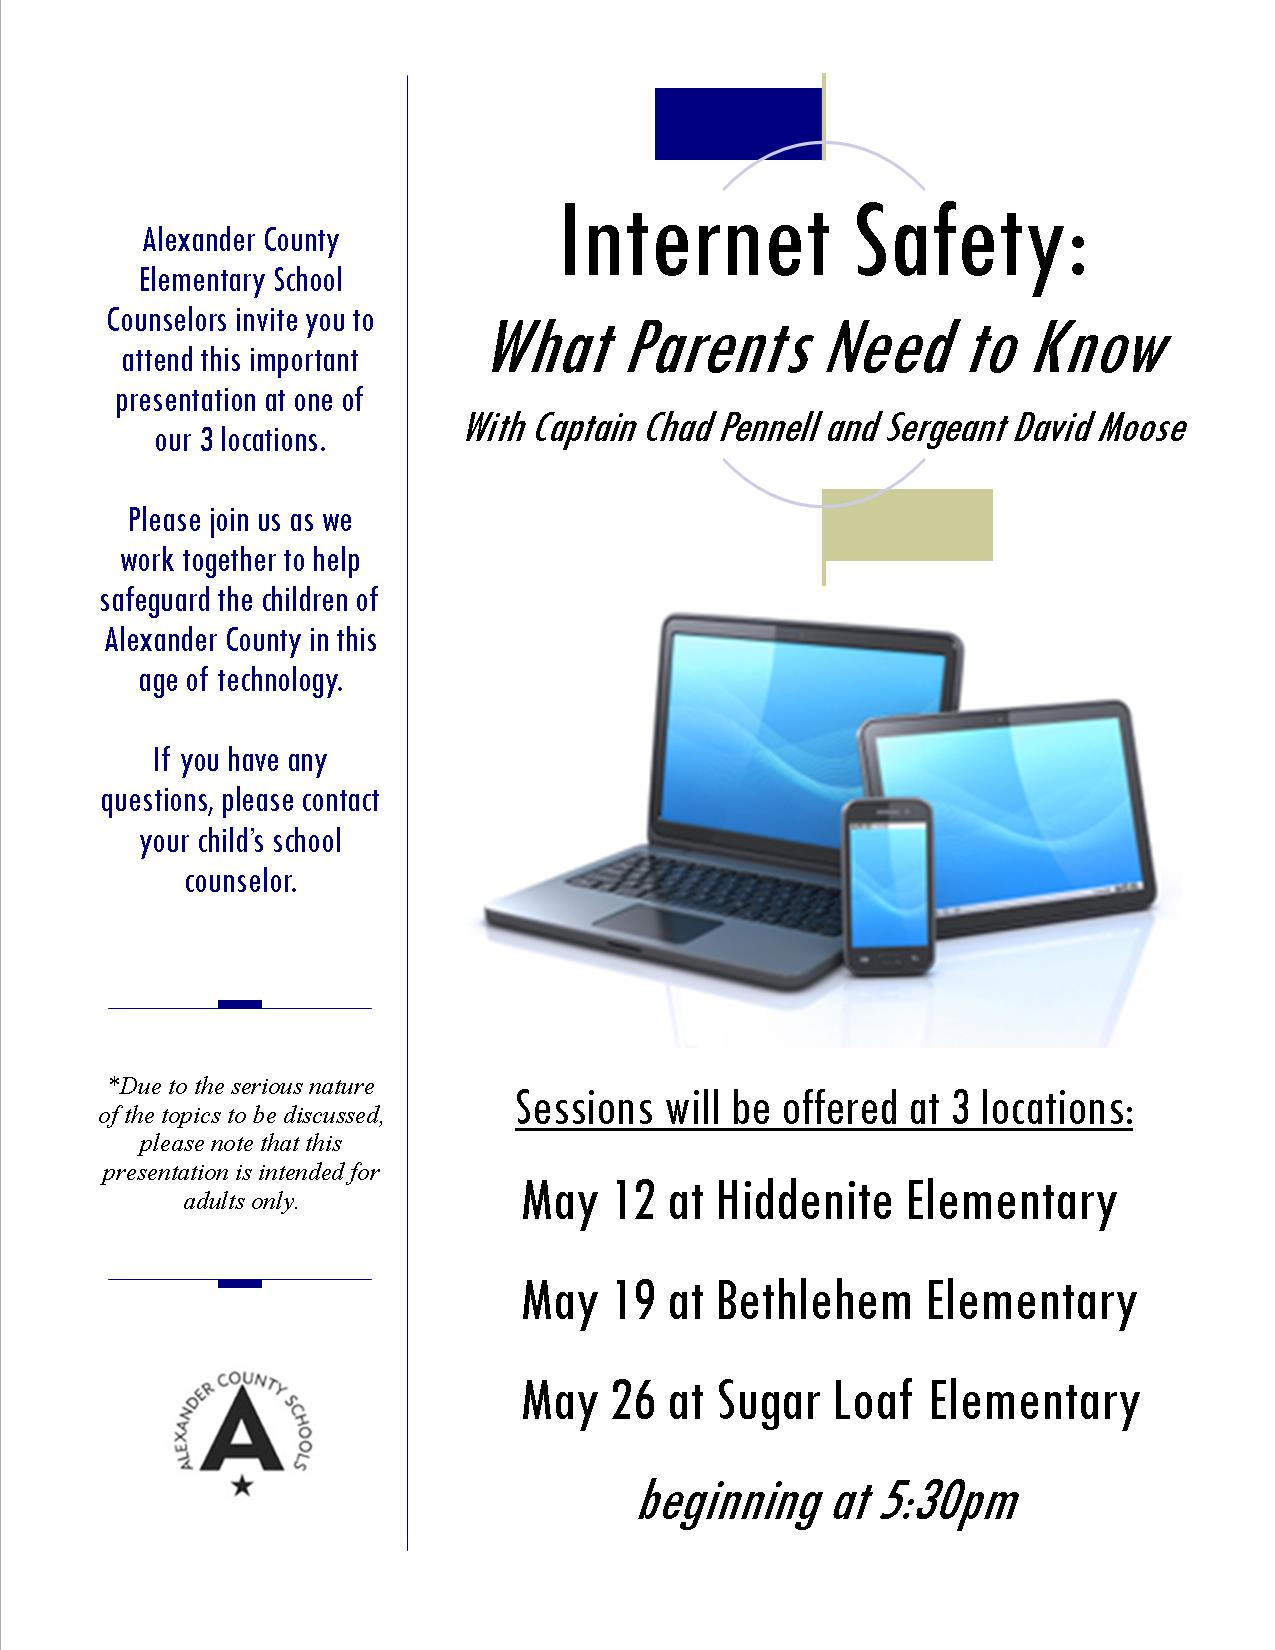 Internet Safety Information Opportunity